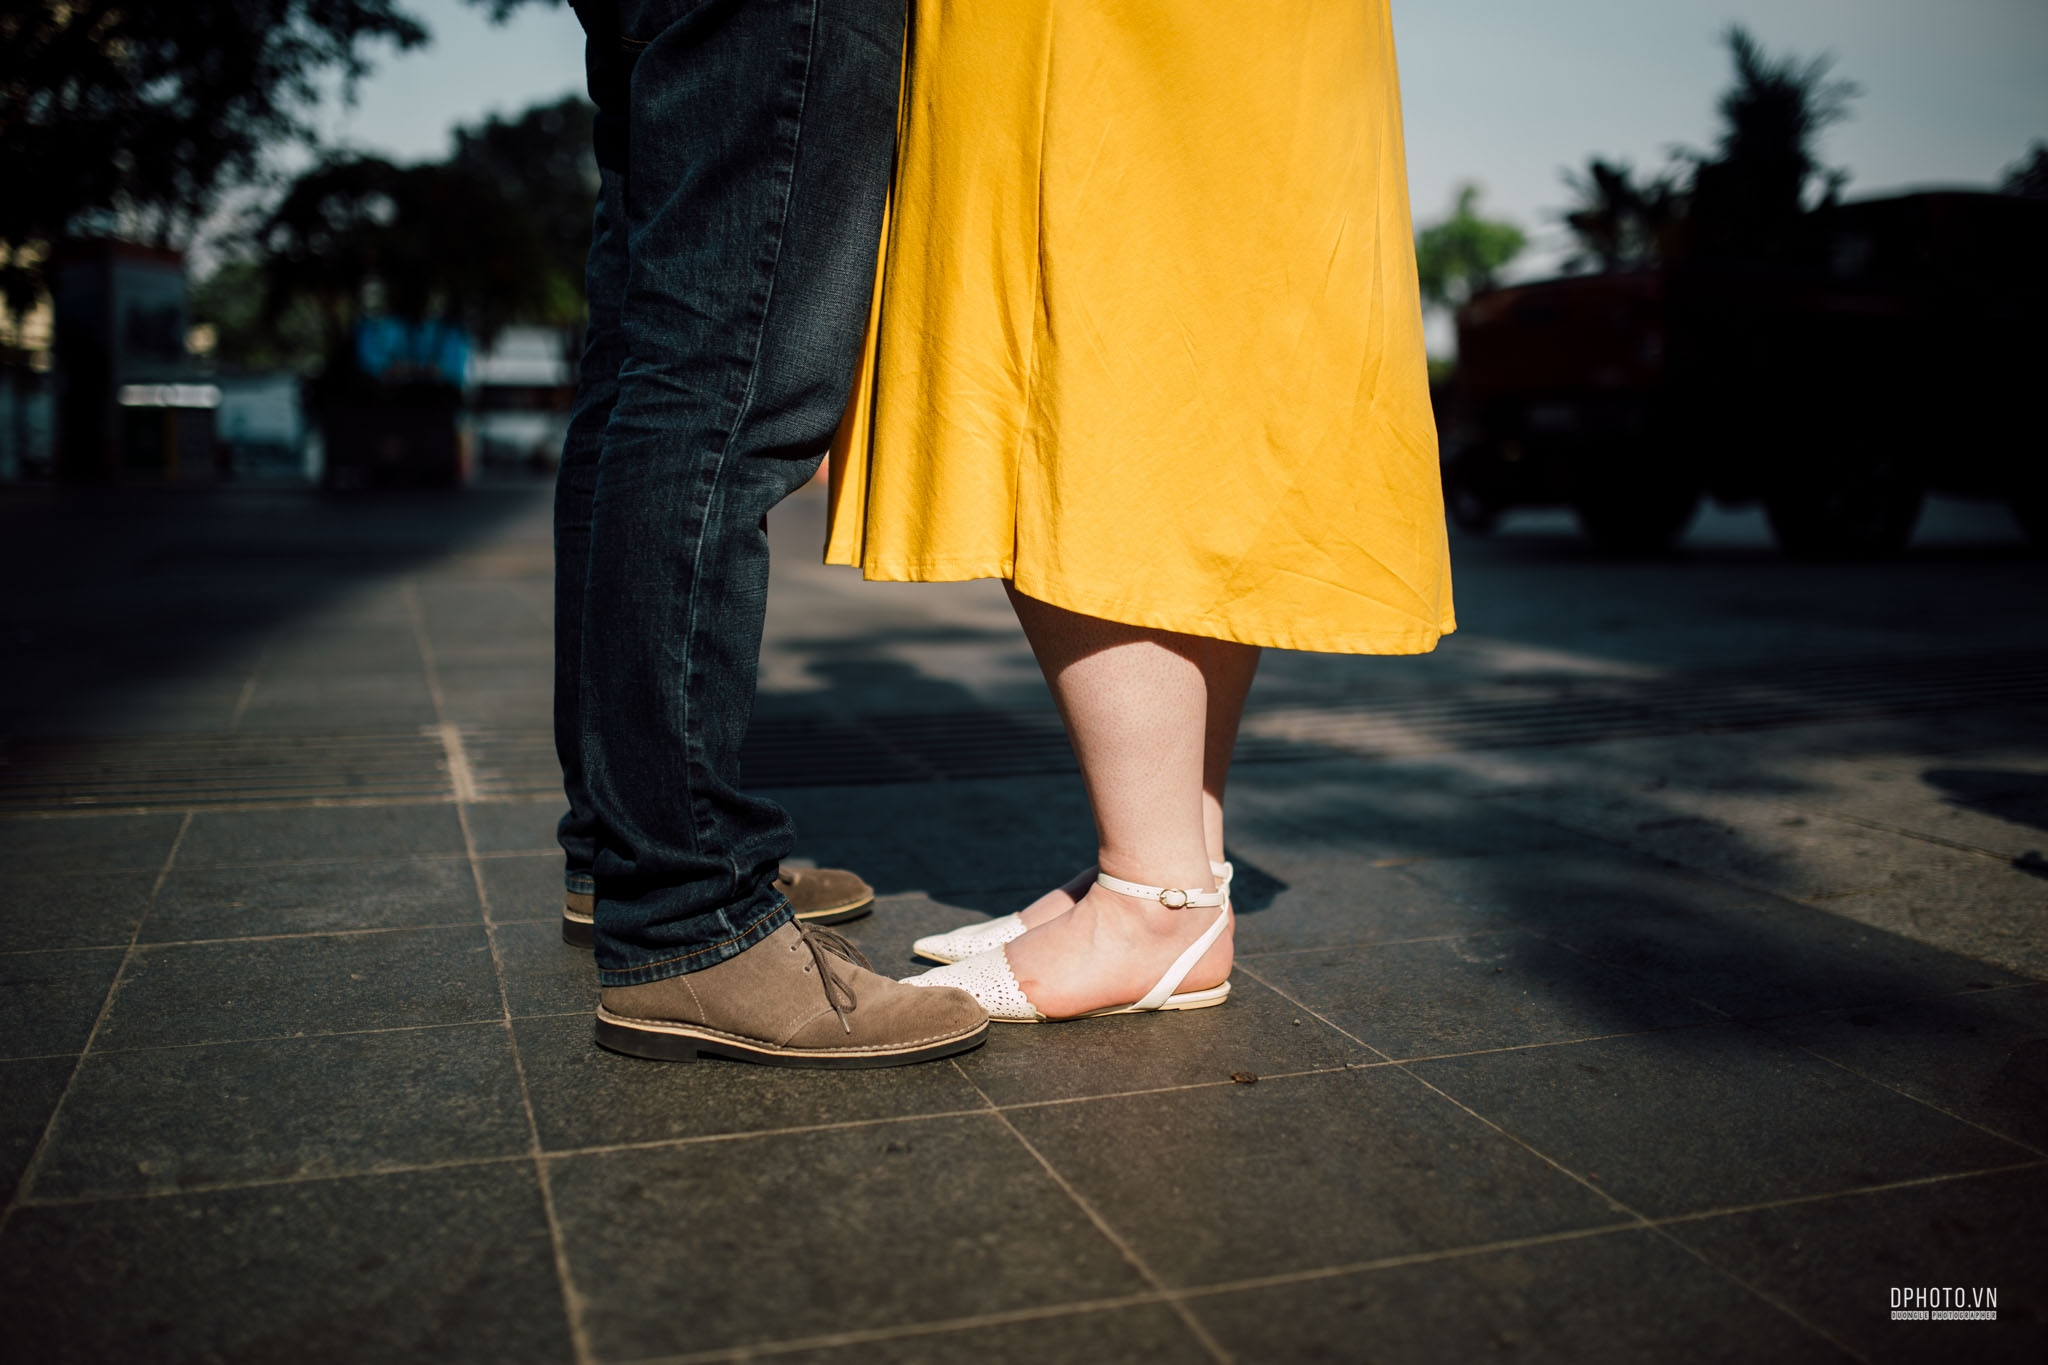 engagement_photo_in_sai_gon_ho_chi_minh_viet_nam23